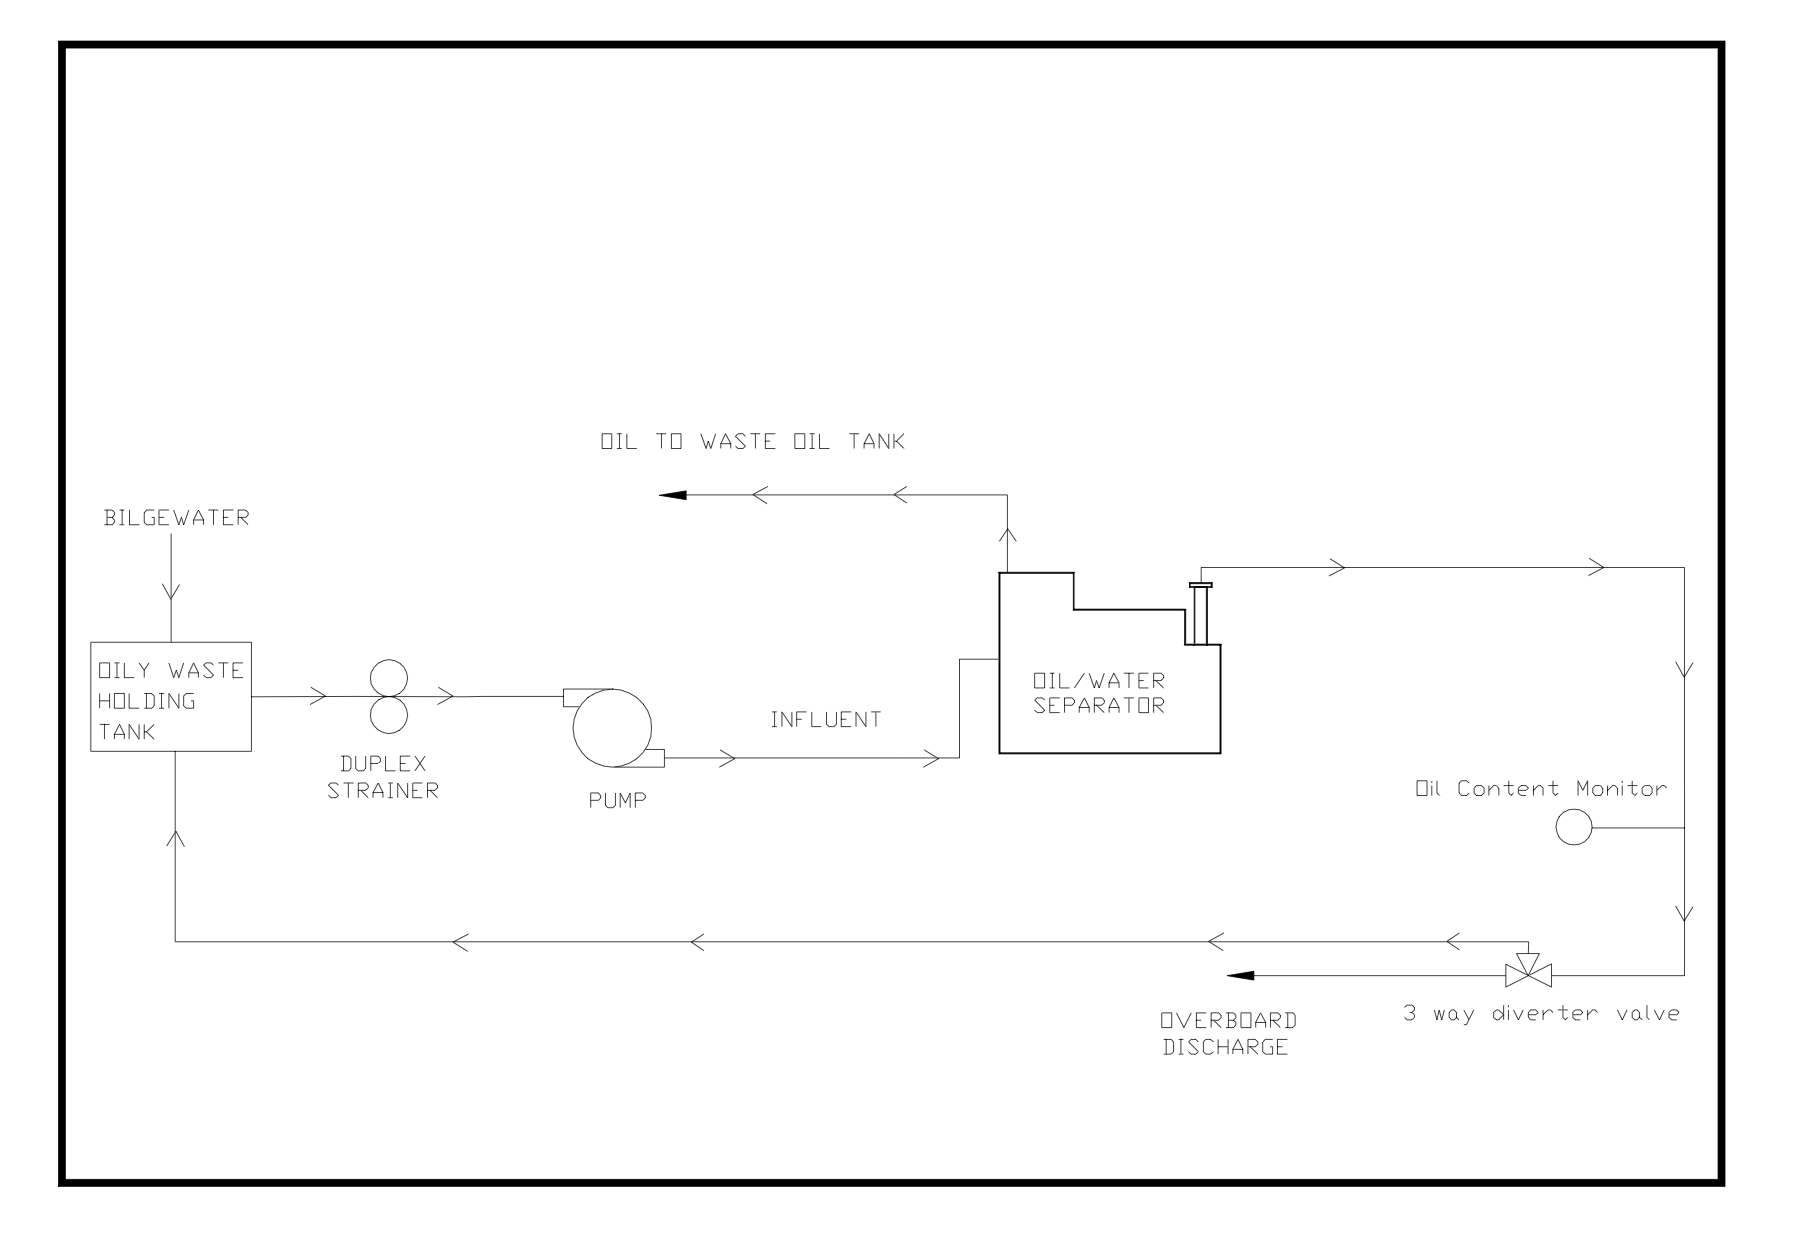 File Diagram Of The Oily Water Separator Process